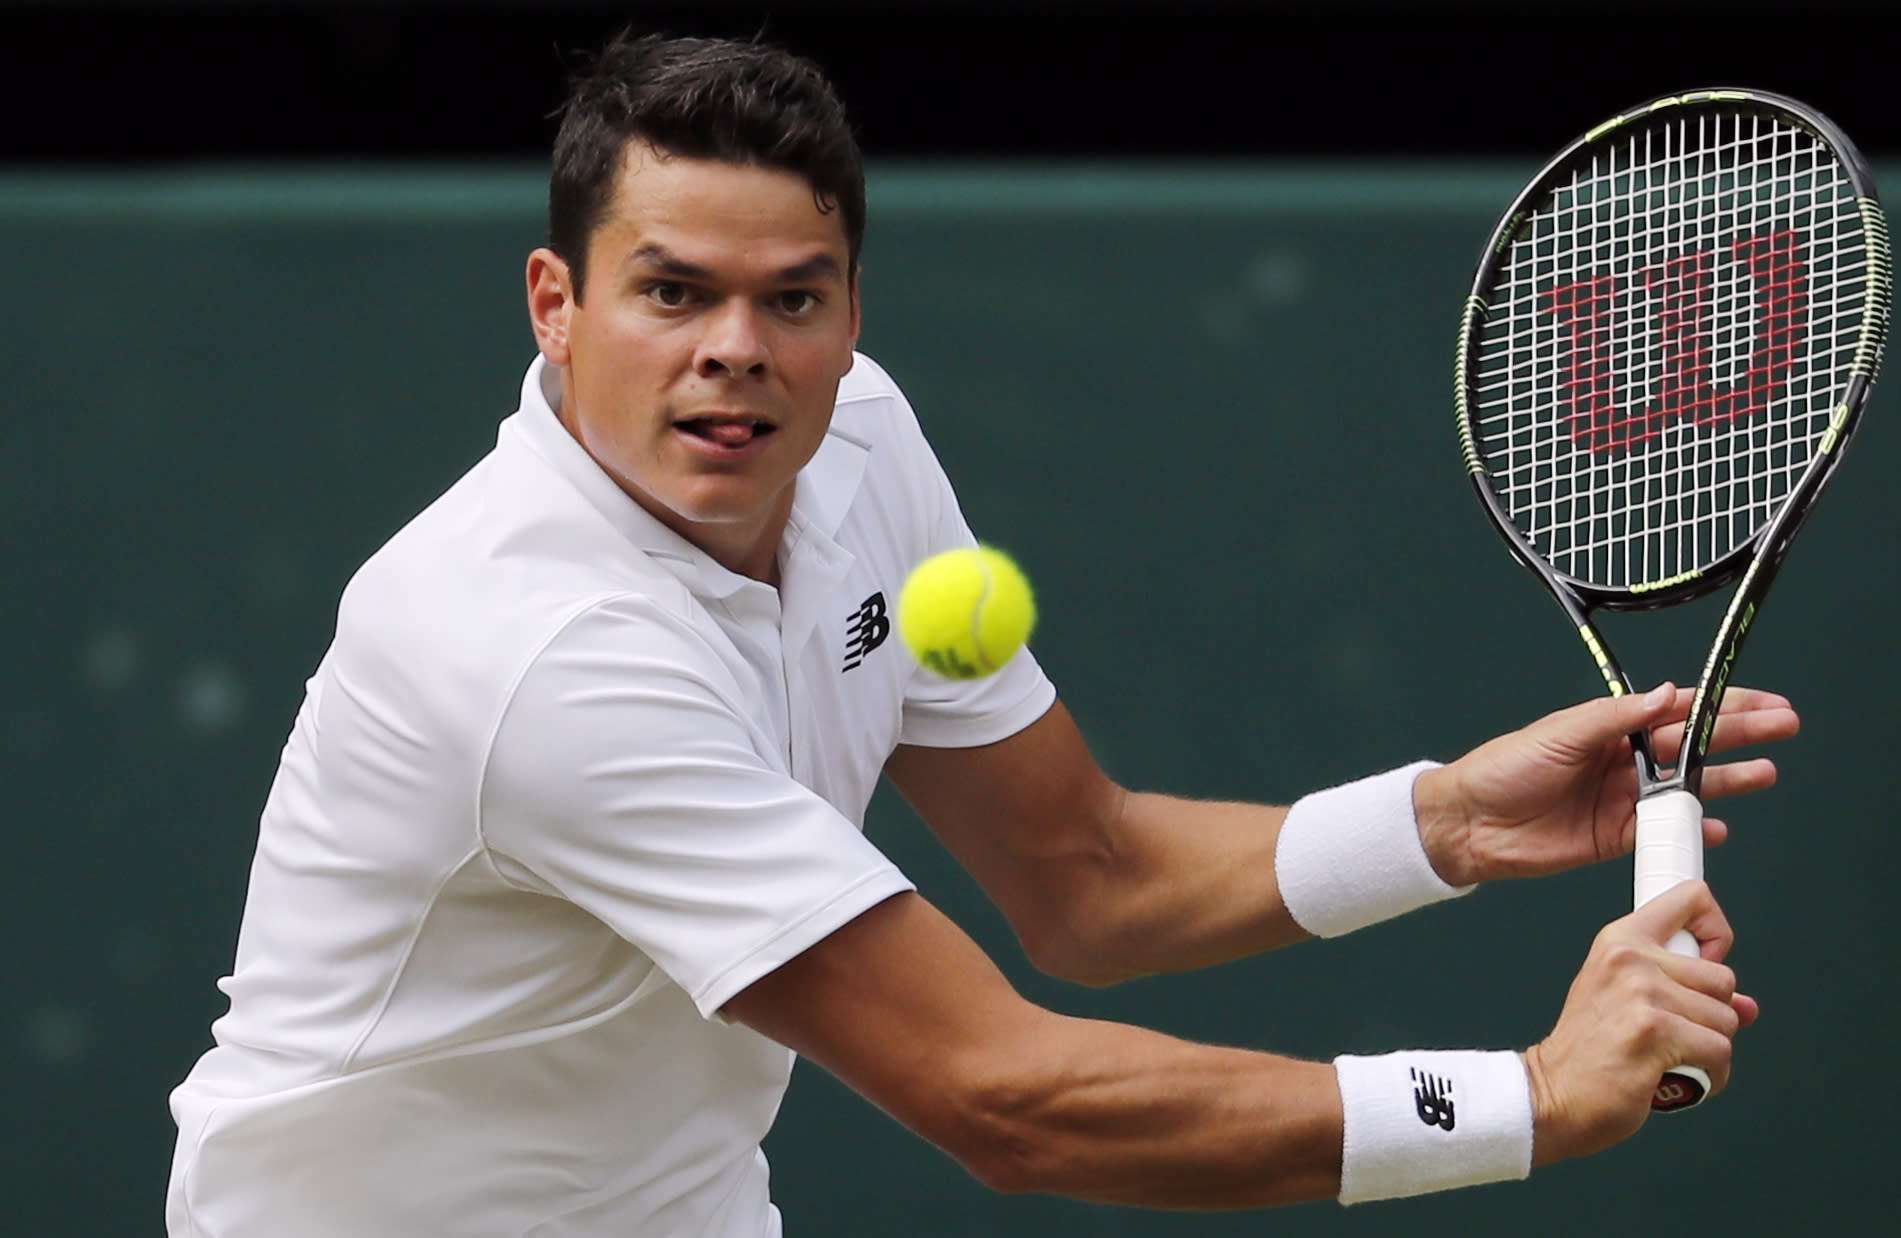 Milos Raonic of Canada plays a shot.